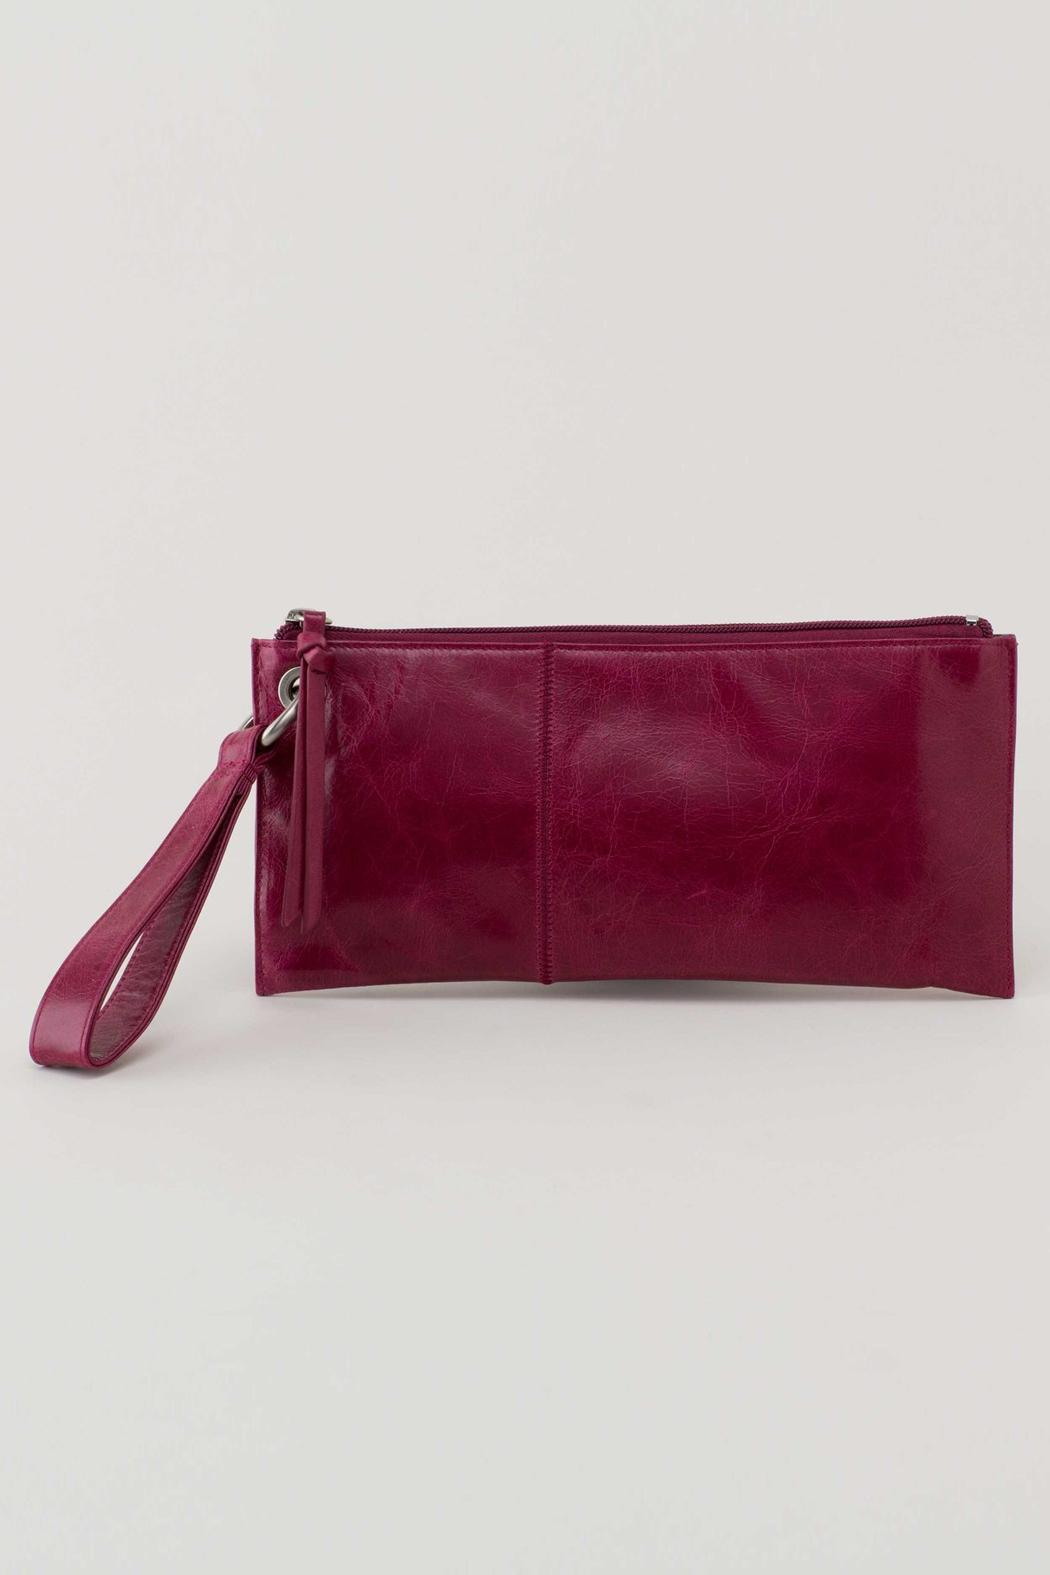 VIDA Leather Statement Clutch - Oblivious One by VIDA FUBL9